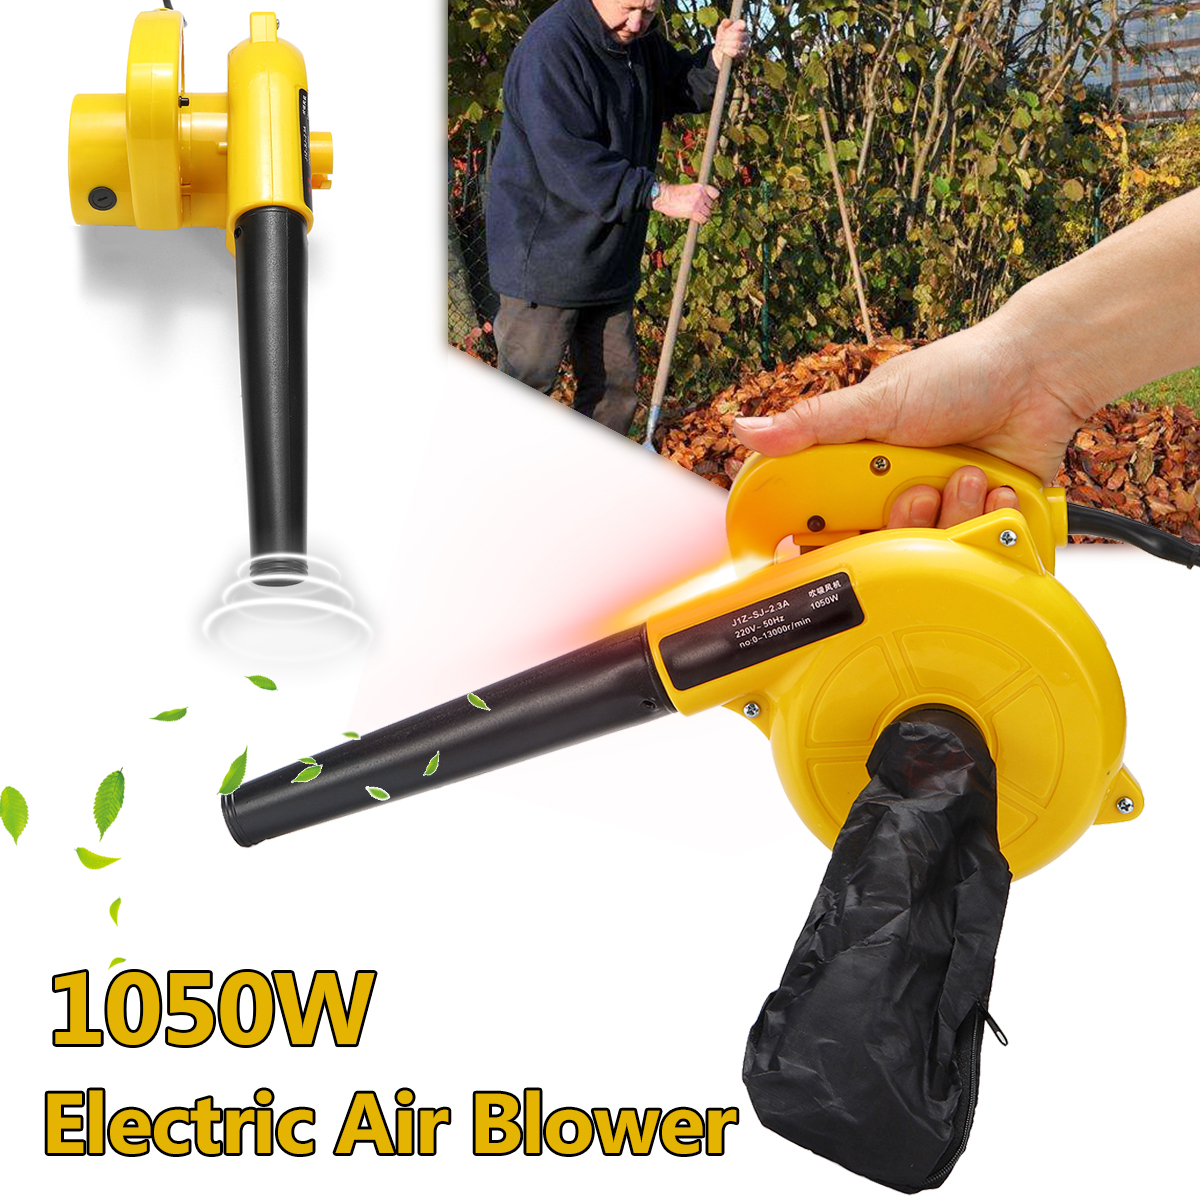 220V 1050W Electric Air Blower Portable Handheld Dust Collector Fan Spray Vacuum Cleaner Car Garden Studio Leaf Blowing Remover